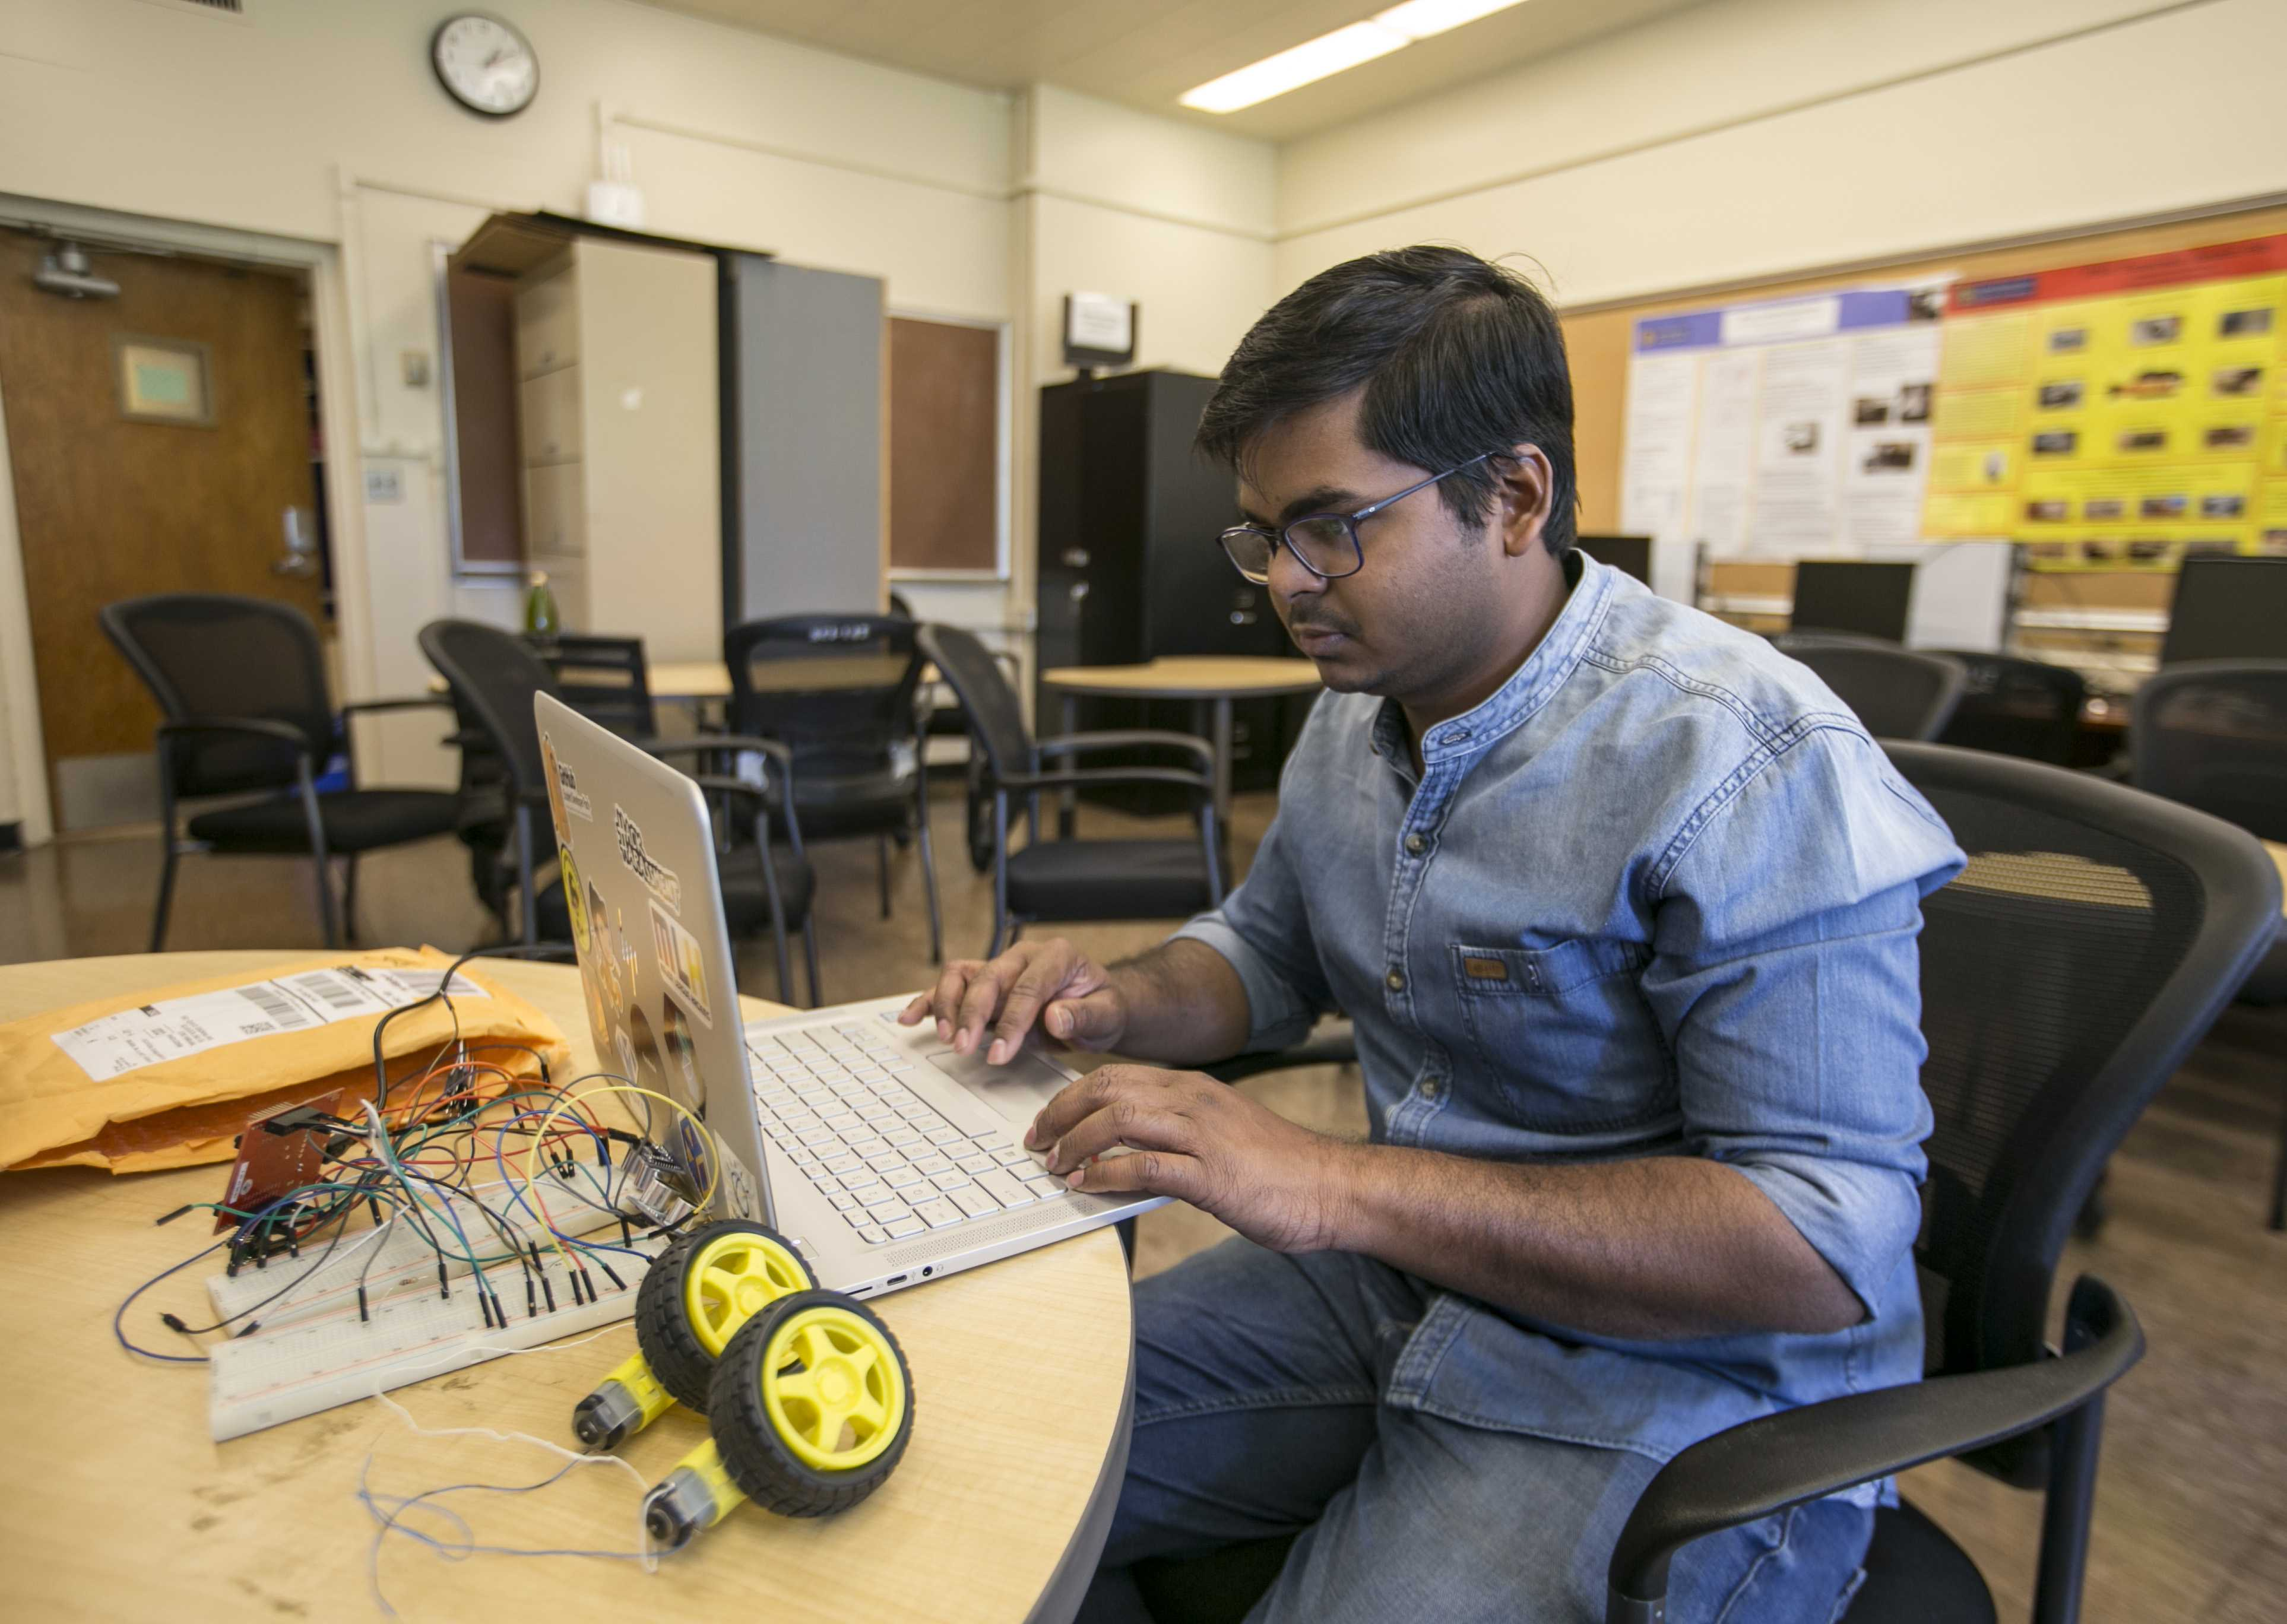 Sairoop a SF State embedded systems major utilizing lab hours in the science department on campus to build a automatic robotic vacuum cleaner. Using four ultra sonic senors and five motors all made from scratch, his aim for the project is to be economical and efficient. Apr 18, 2017. ( Xpress Mag Ryan Zaragoza).